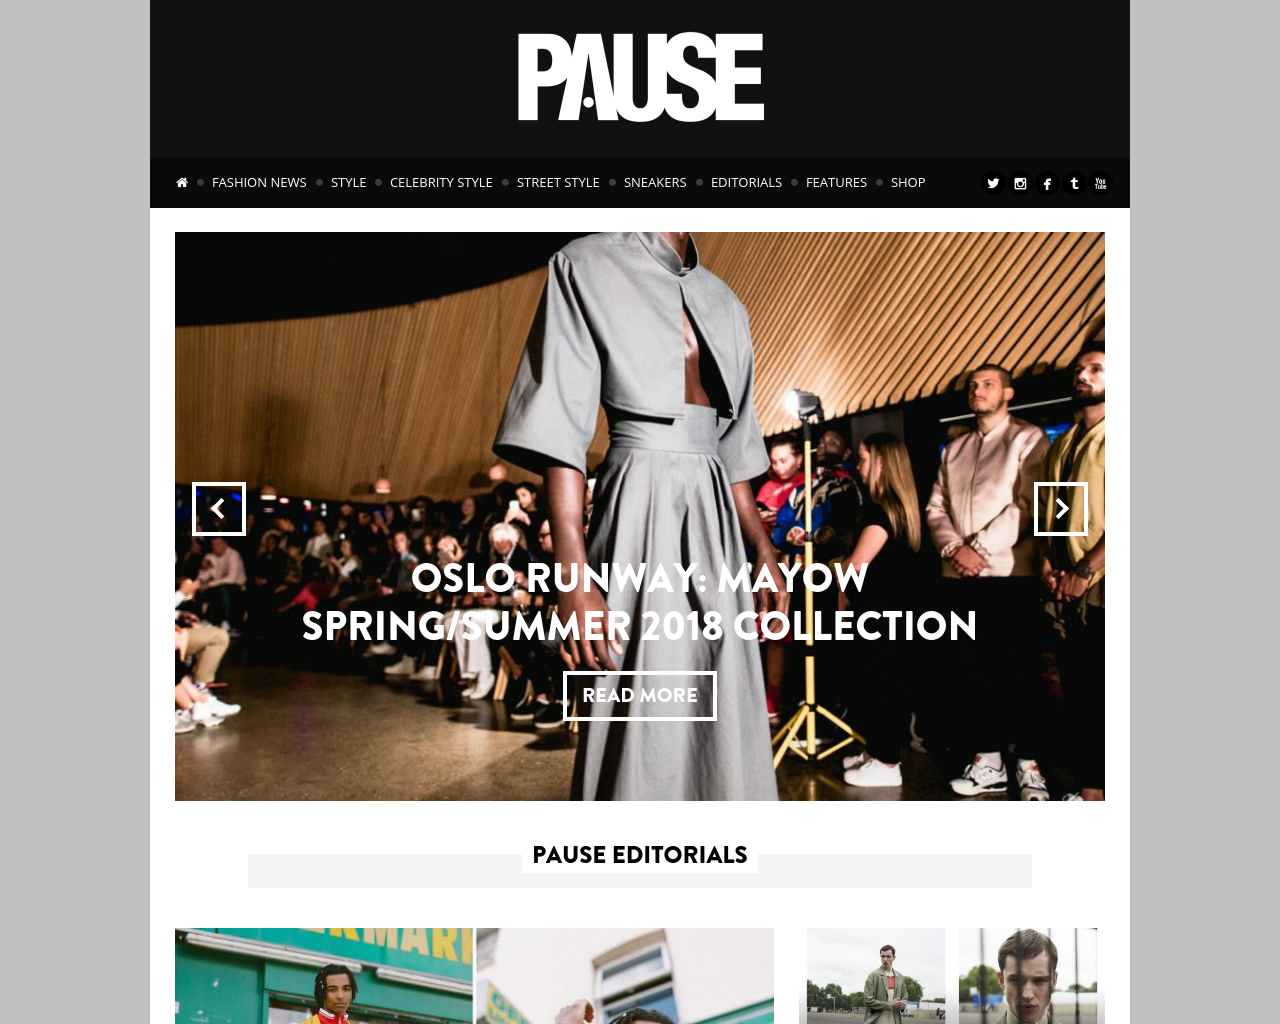 PAUSE-Online-Advertising-Reviews-Pricing